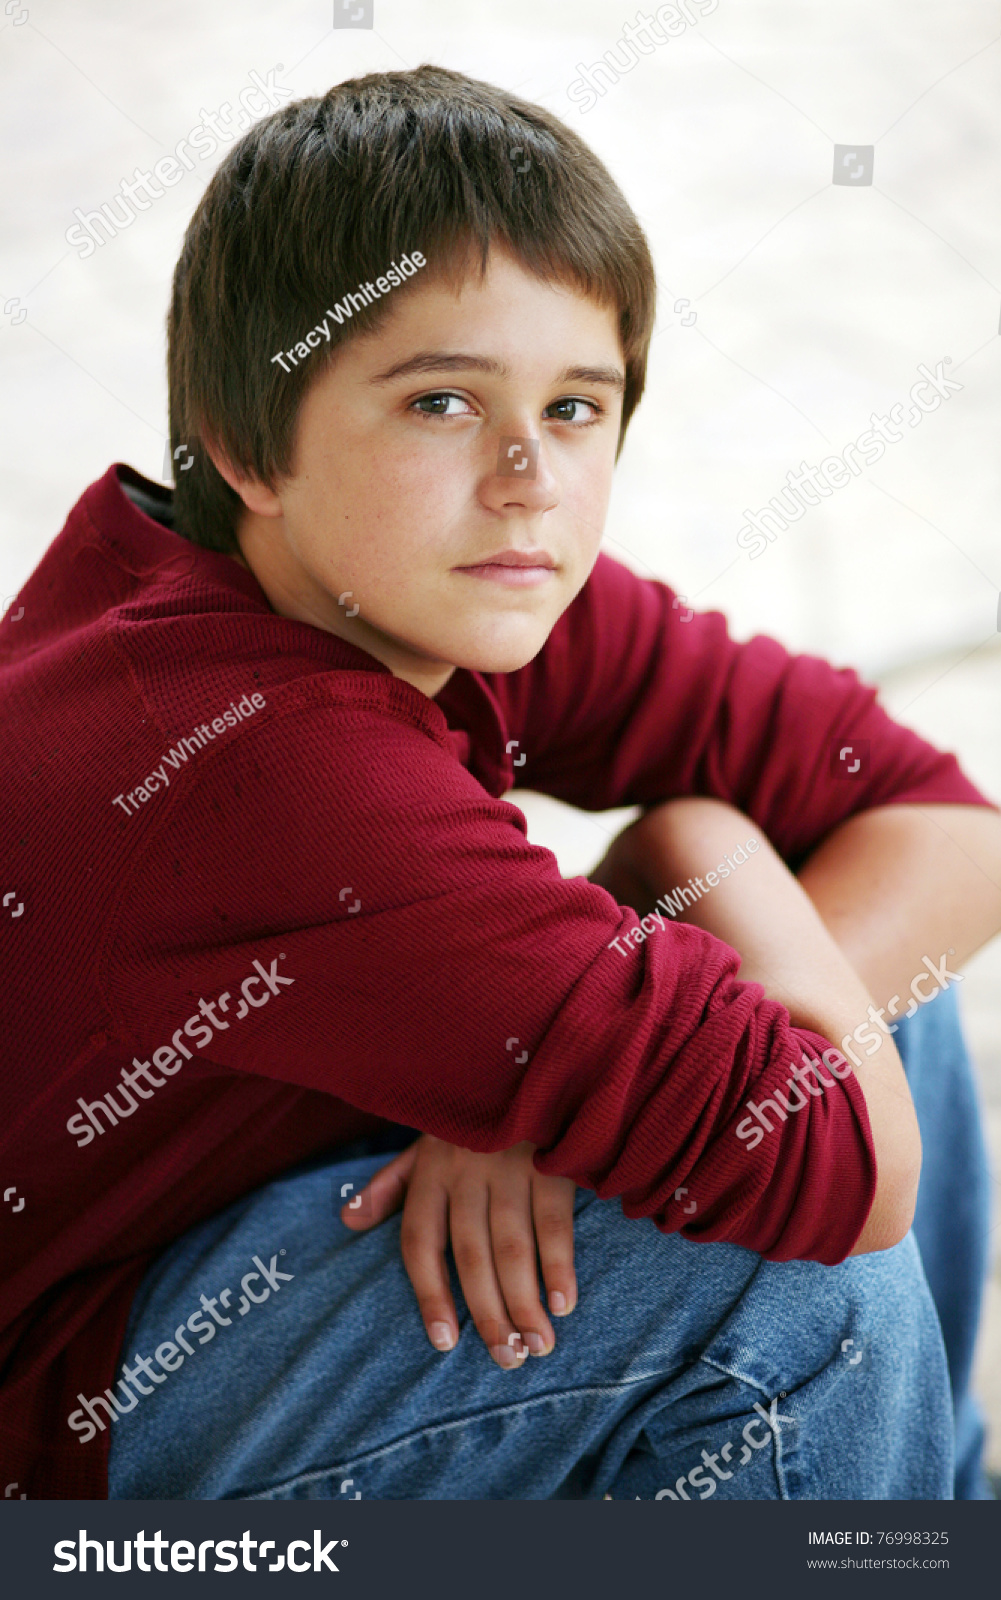 Cute Young Teen Boy Natural Light Stock Photo 76998325